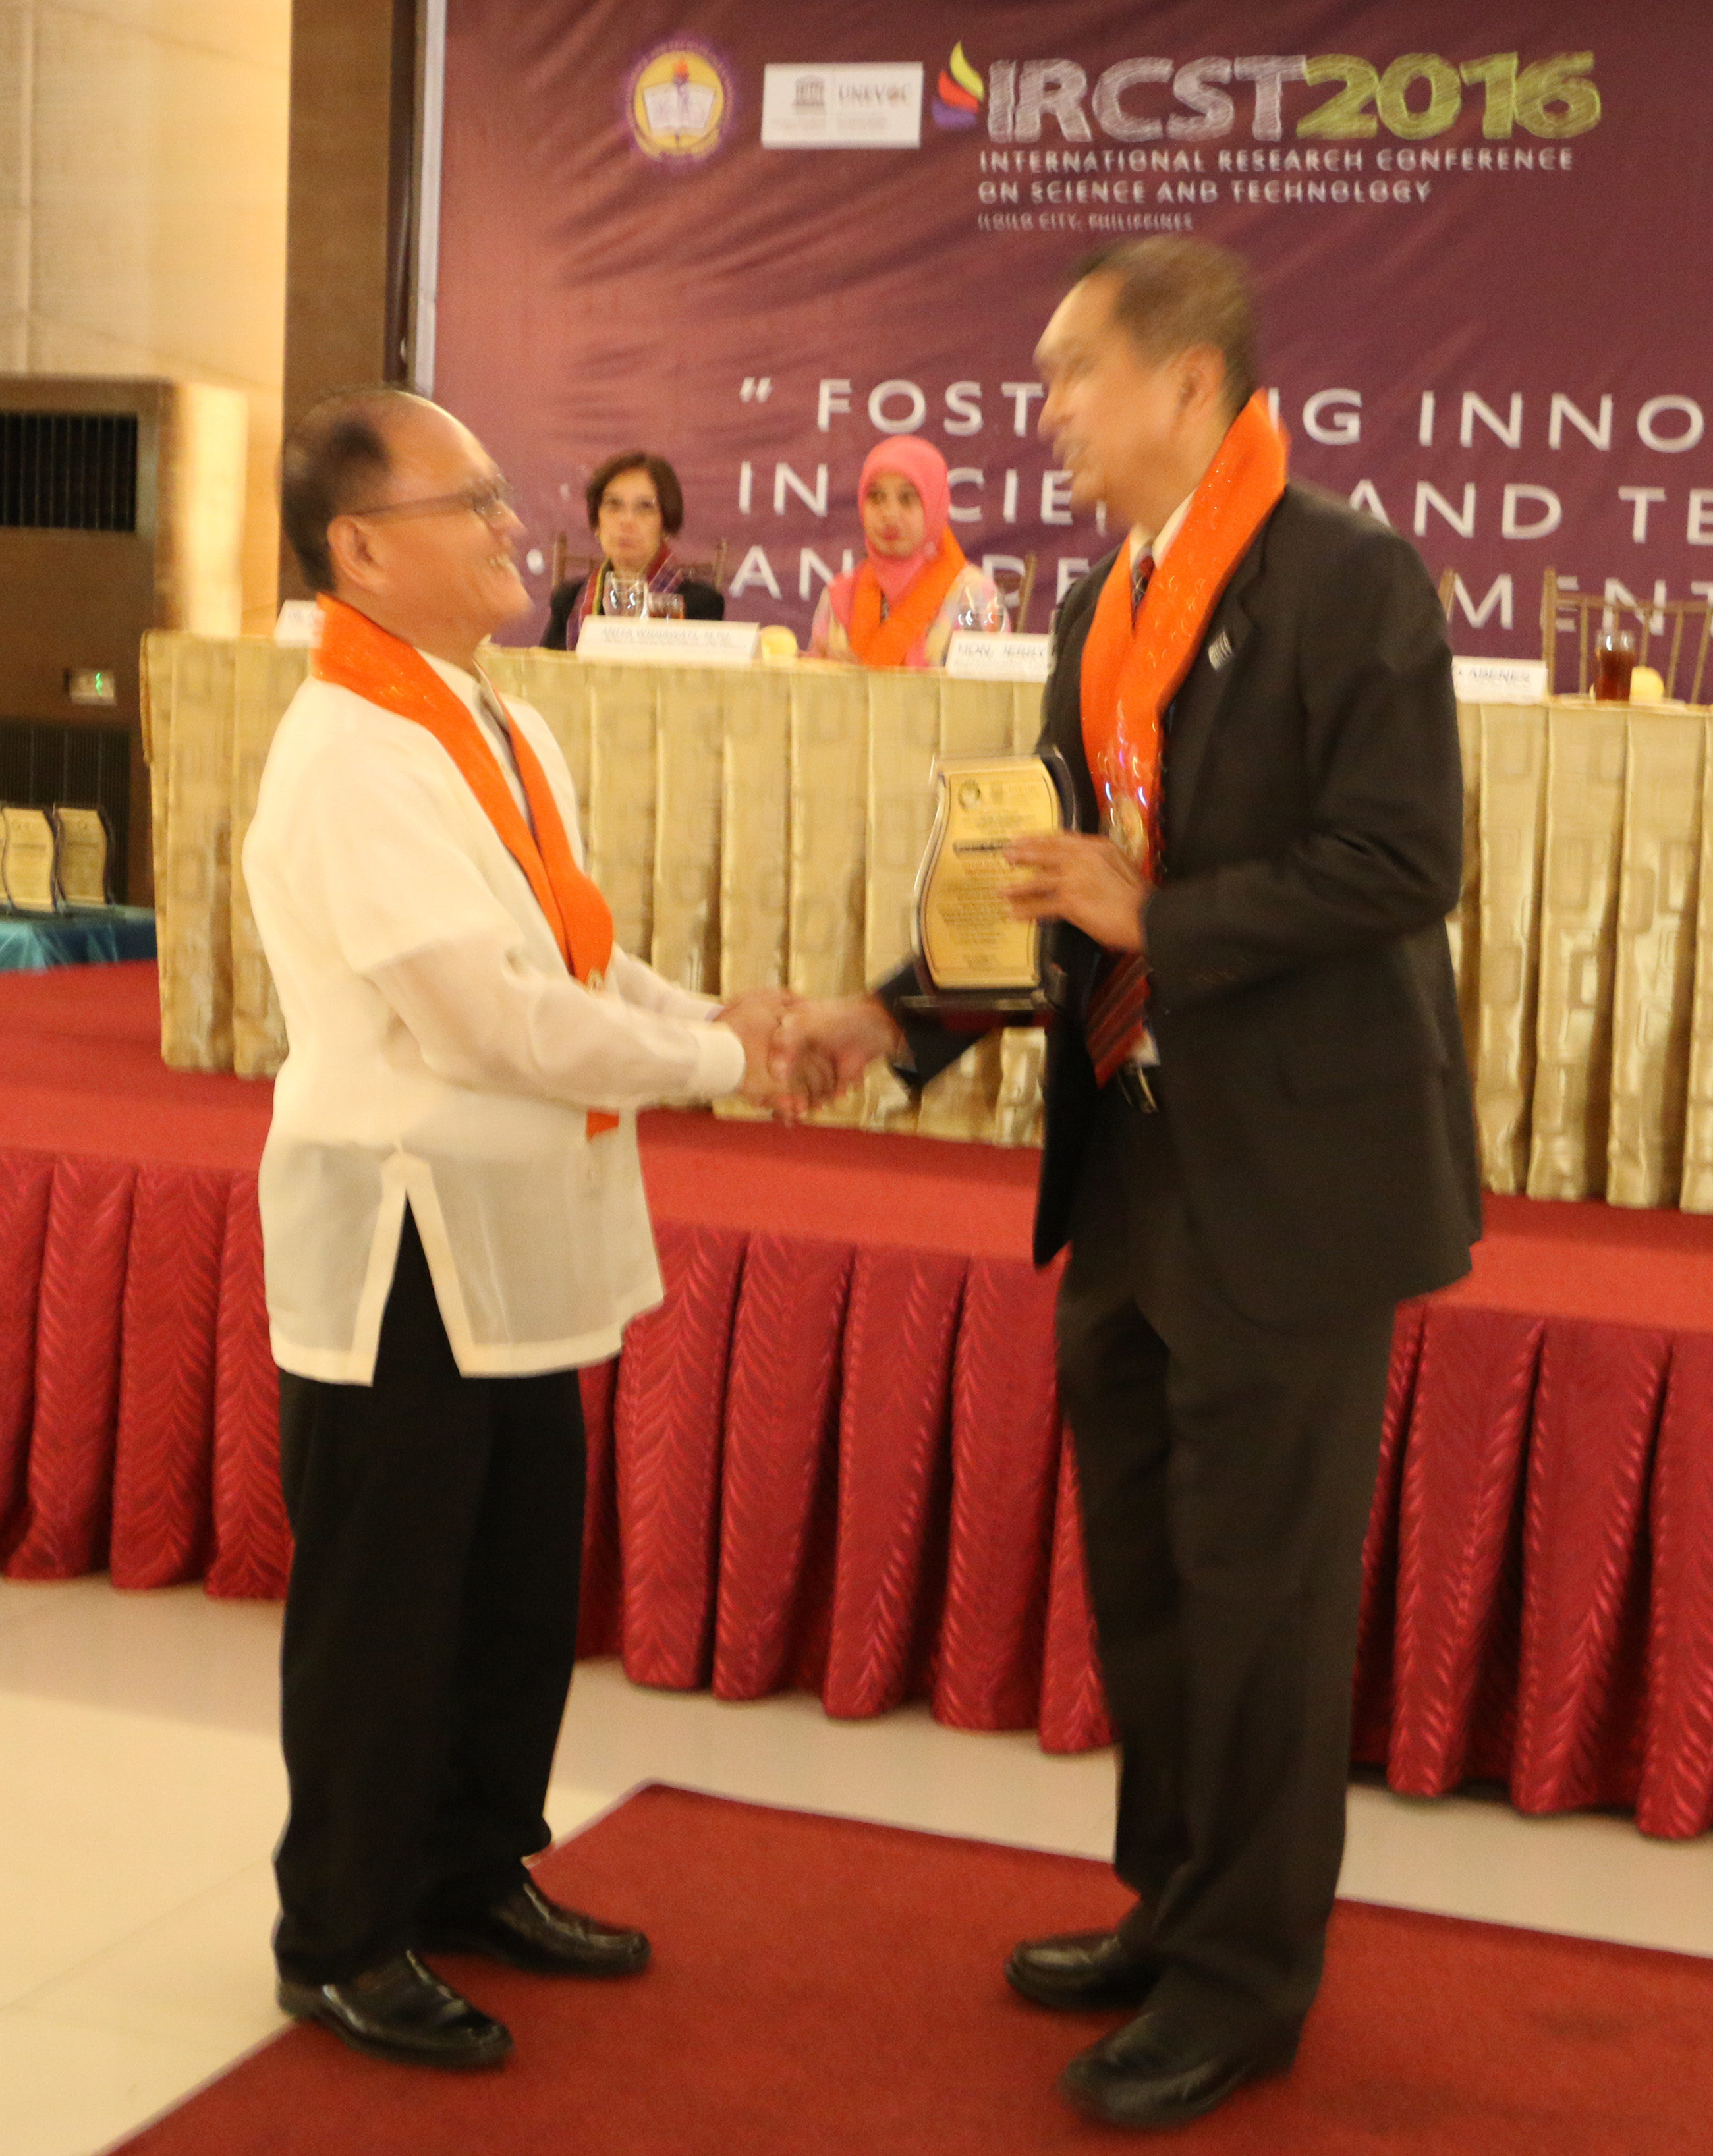 ISAT U President Dr. Raul F. Muyong gives the Plague of Recognition to Dr. Fiorillo B. Abenes of the USAID-STRIDE.